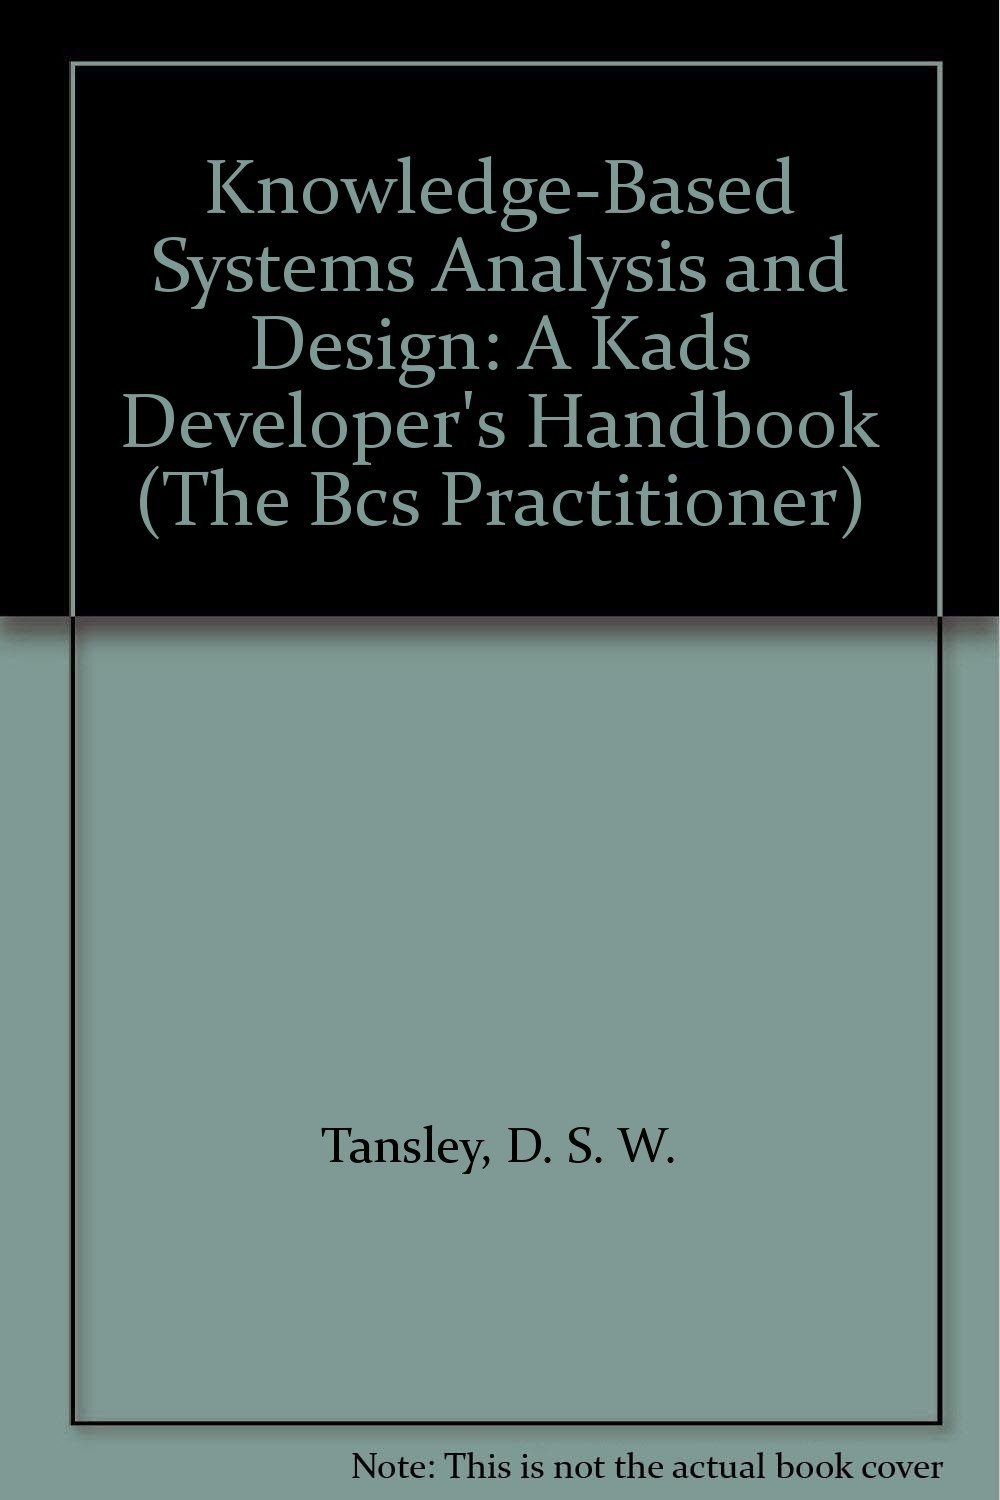 Knowledge-Based Systems Analysis and Design: A Kads Developer's Handbook (The Bcs Practitioner)